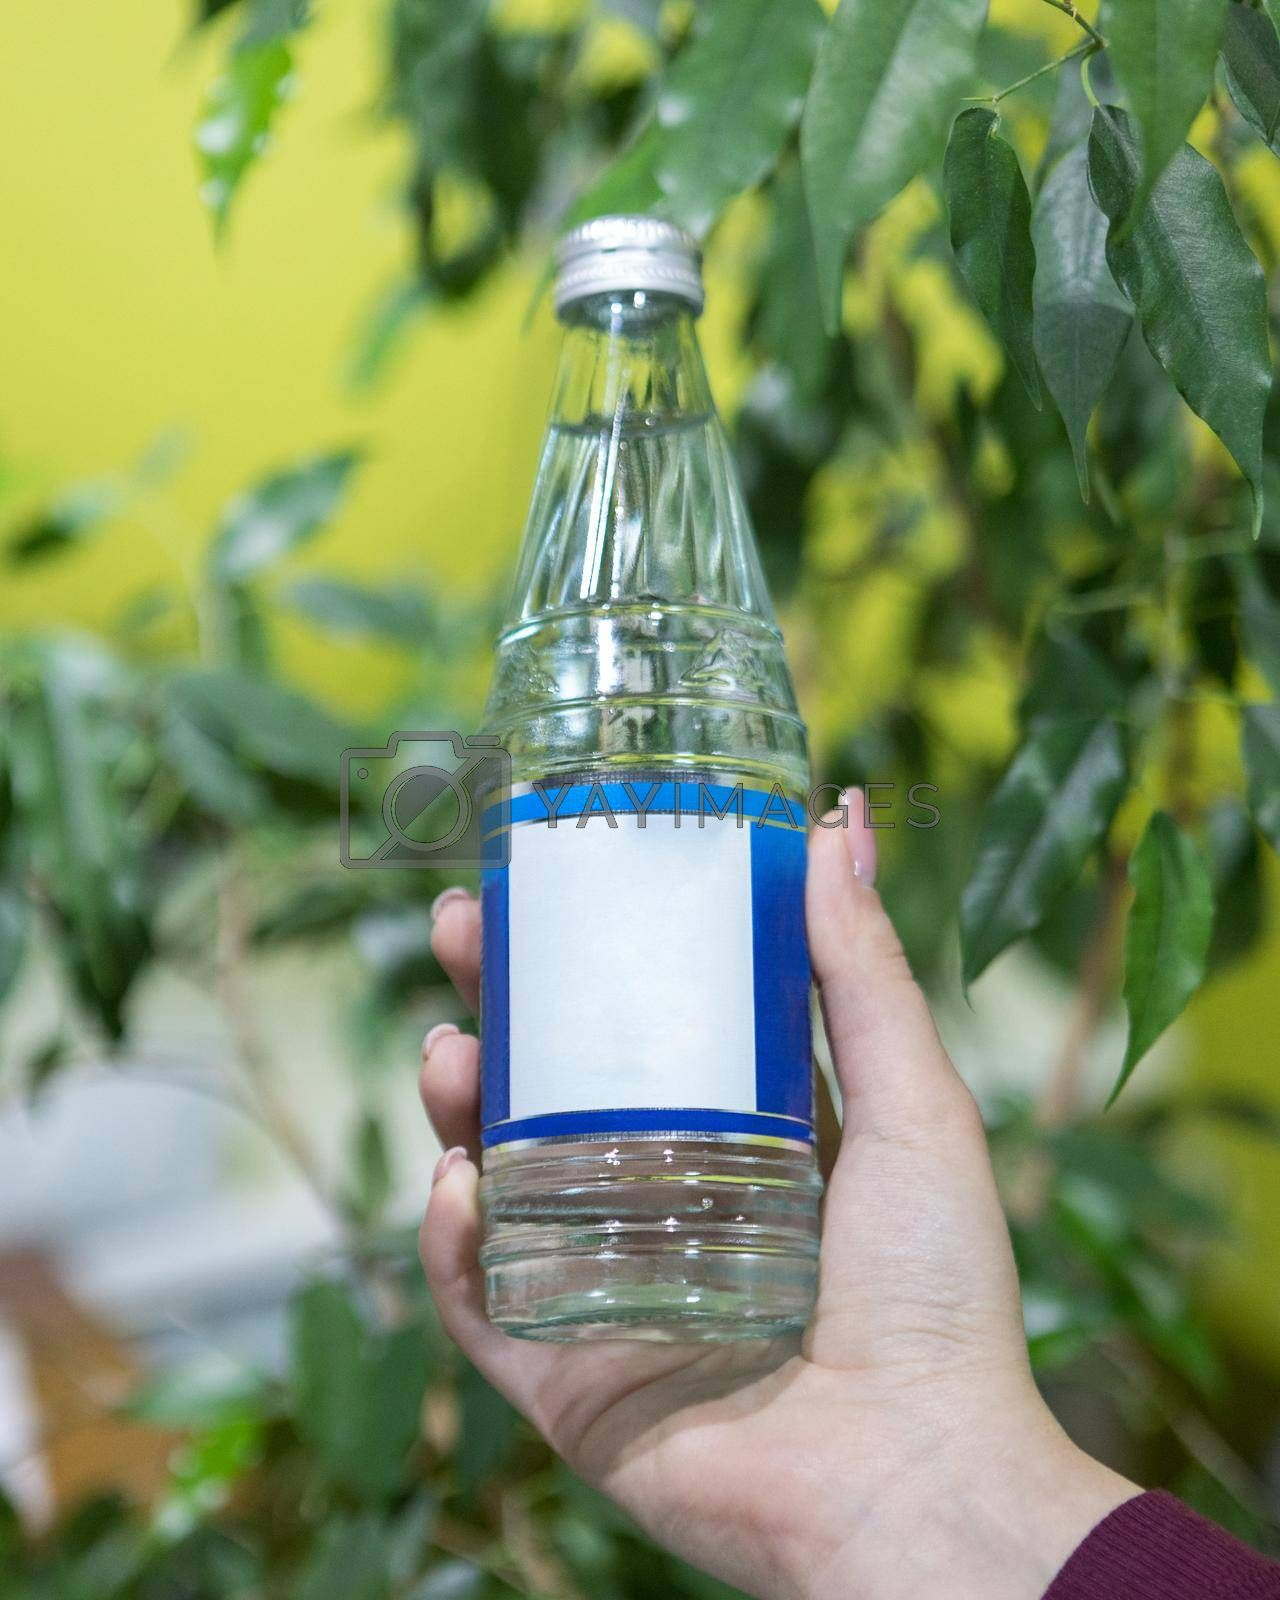 Holding a glass water bottle with green background